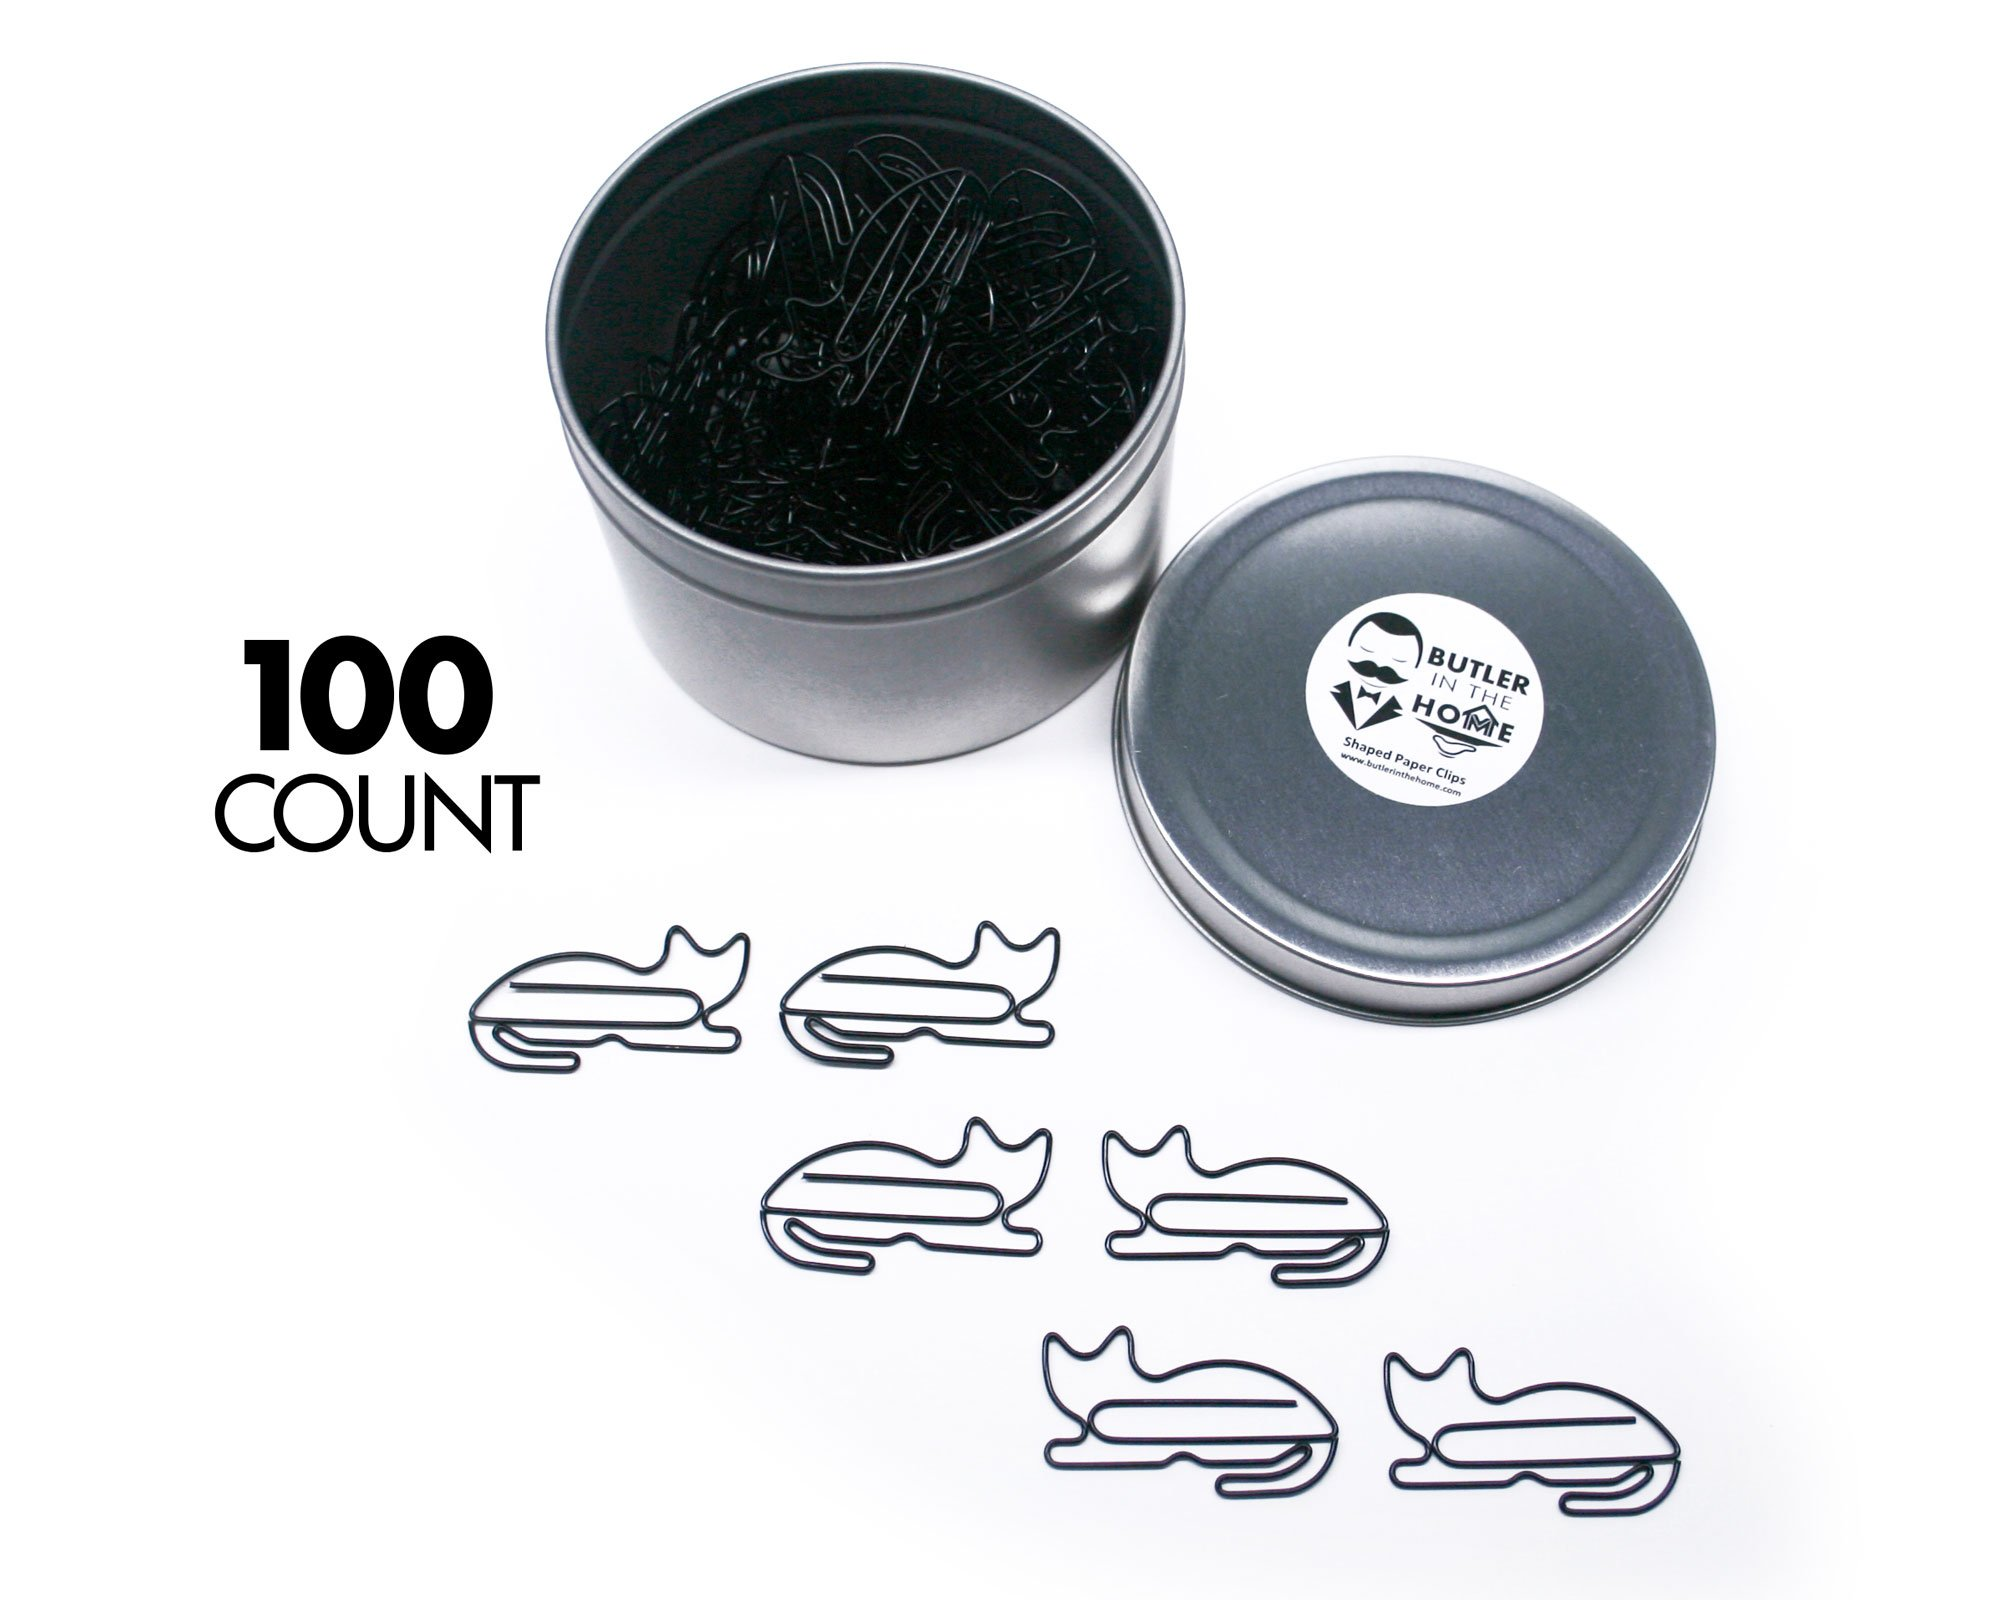 Butler in the Home Animal Cat Shaped Paper Clips in Silver Tin and Gift Box Great For Paper Clip Collectors or Animal Lovers (Black 100 Count)